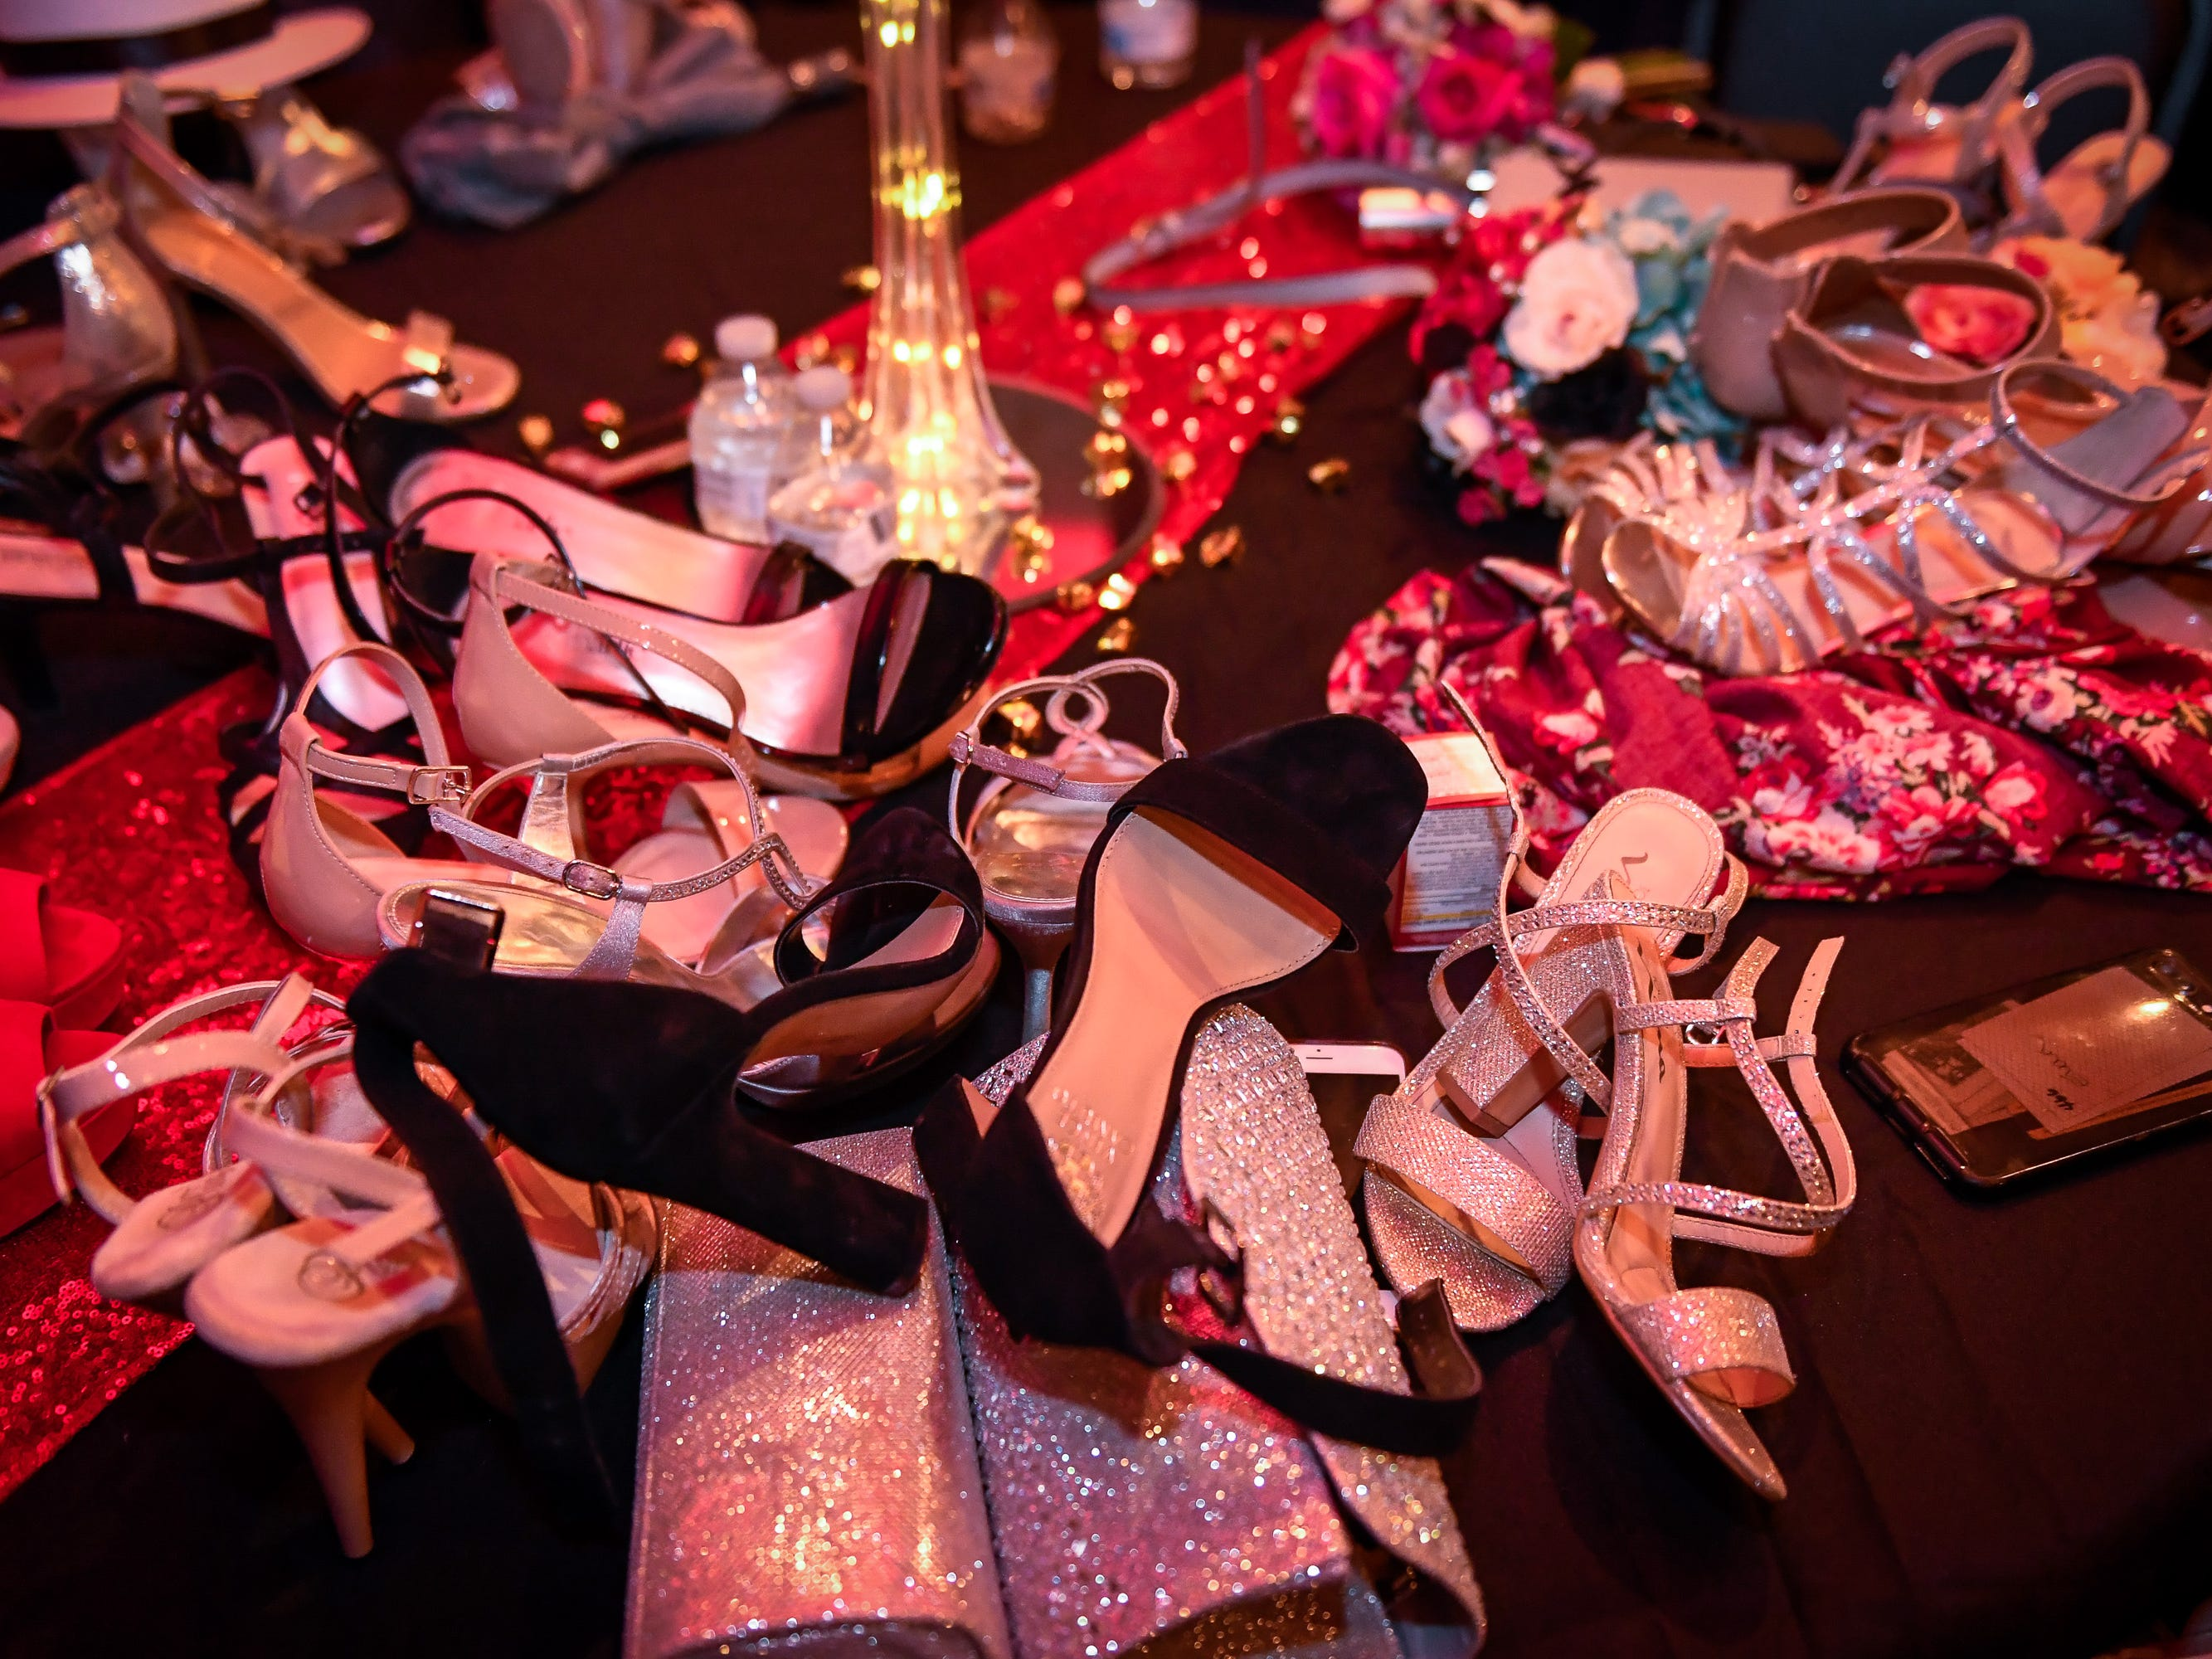 Shoes cover a table as couples head to the dance floor at the North High School Prom held at the Old Post Office in downtown Evansville Saturday, April 13, 2019.